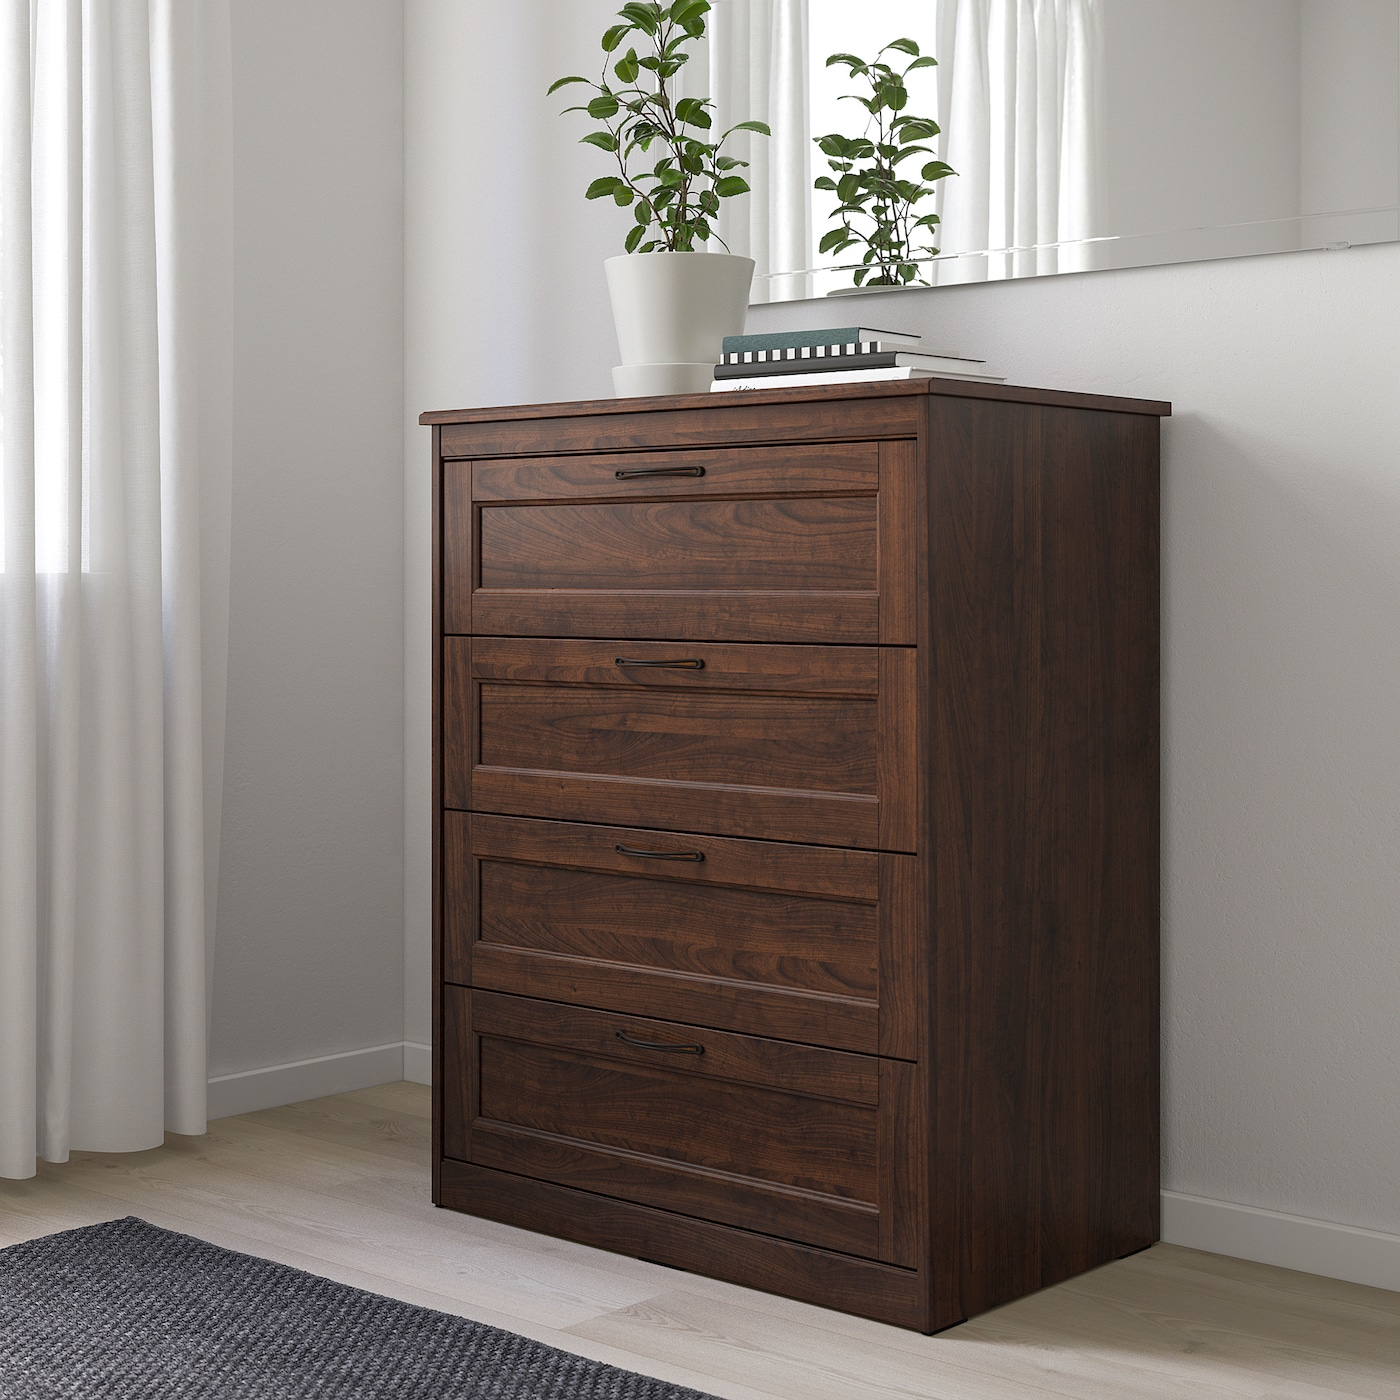 "SONGESAND 4-drawer chest brown 32 1/4 "" 19 5/8 "" 41 "" 28 "" 15 3/4 """